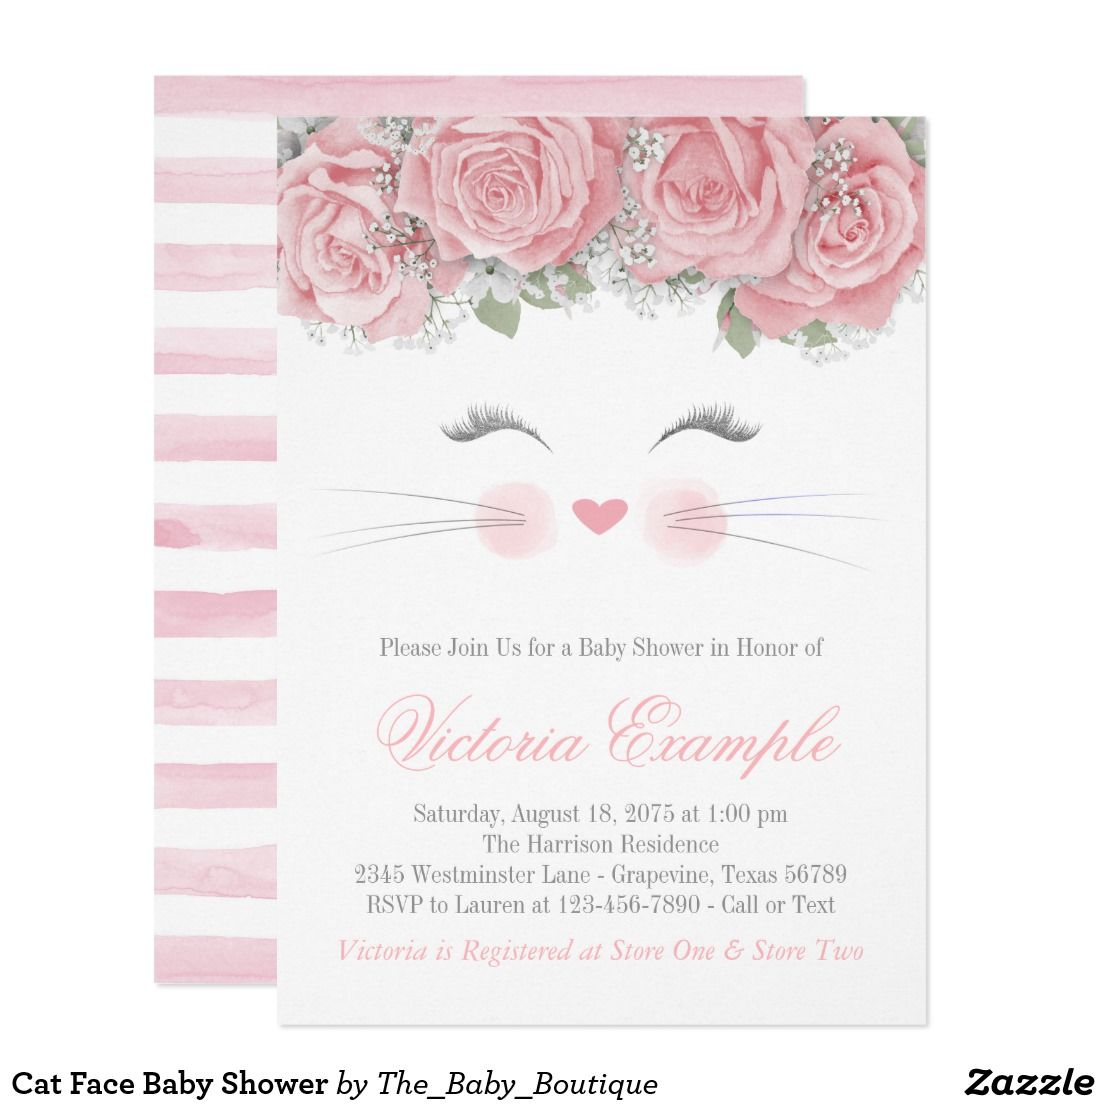 Cat Face Baby Shower Invitation Zazzle Com Cat Baby Shower Cat Baby Shower Invitations Shower Invitations